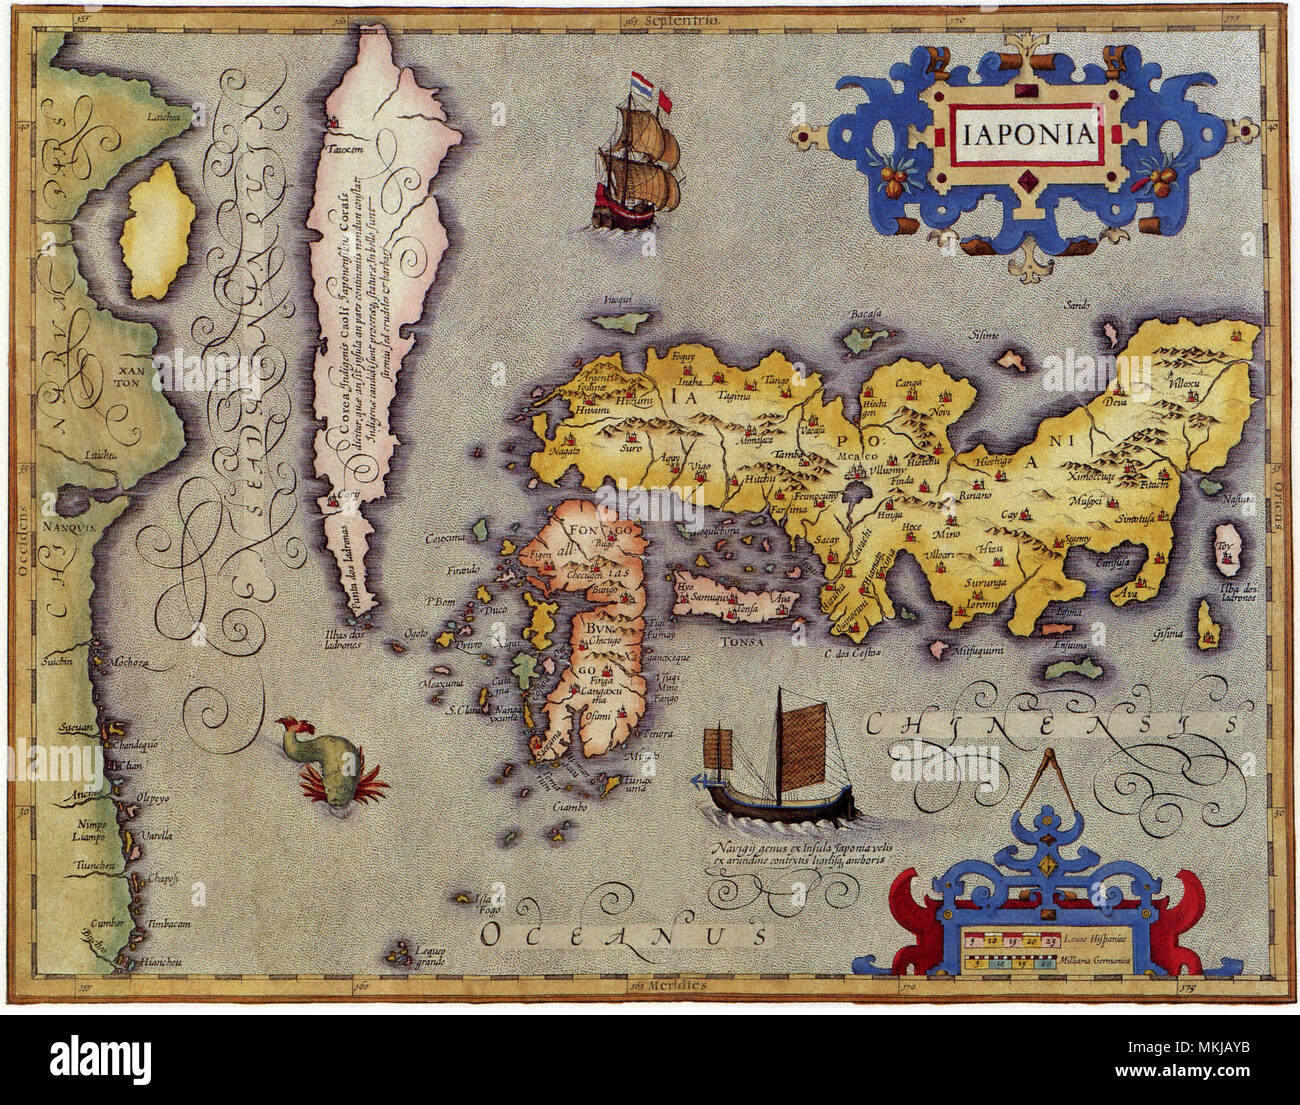 Ancient Map Of Japan.Ancient Map Of Japan 1606 Stock Photo 184185887 Alamy